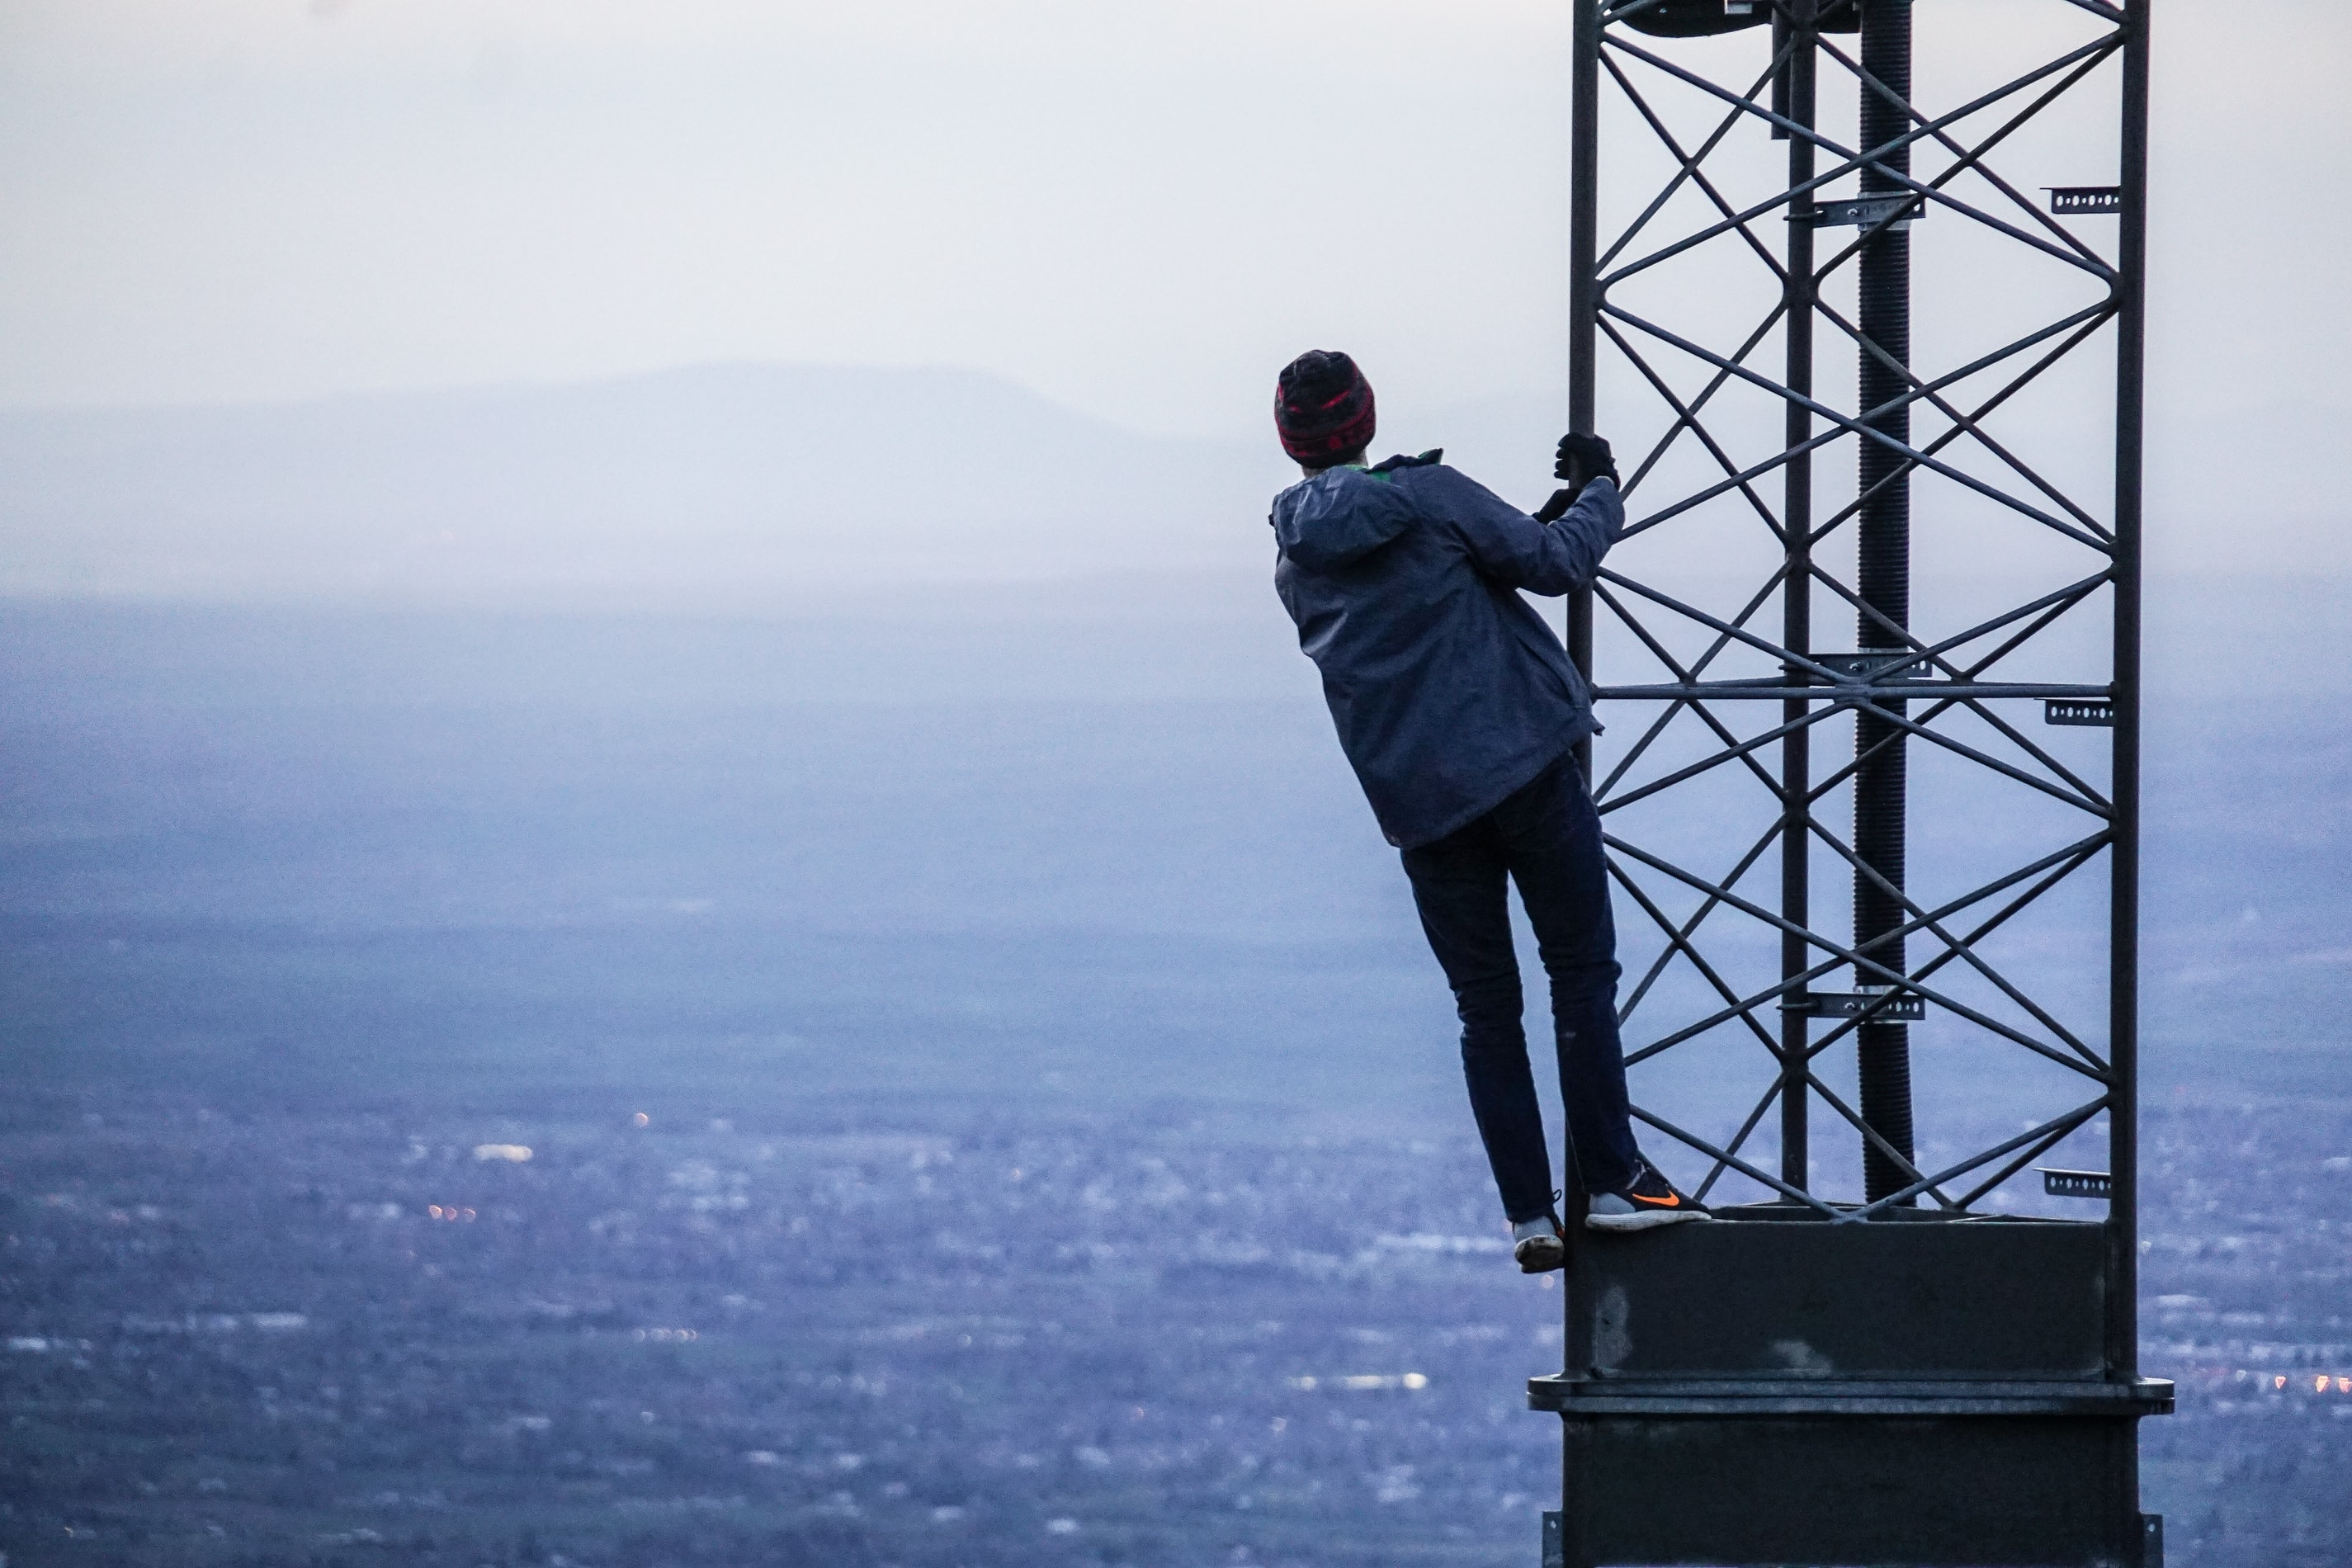 5G Non-Standalone to 5G Standalone: New opportunities for Communications Service Providers